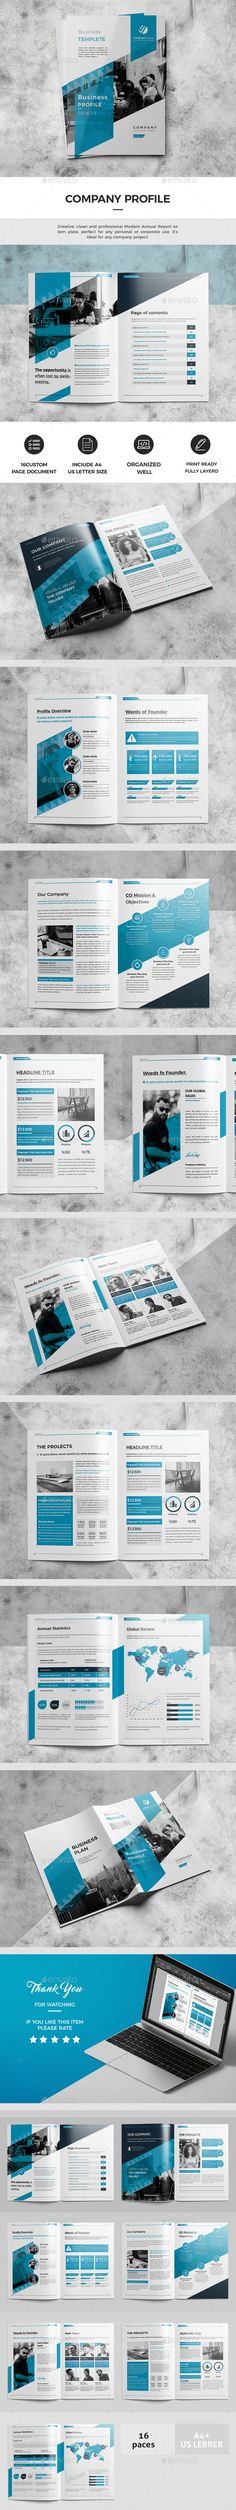 Business Plan — InDesign INDD #simple #brand • Download ➝ https://graphicriver.net/item/business-plan/19398900?ref=pxcr